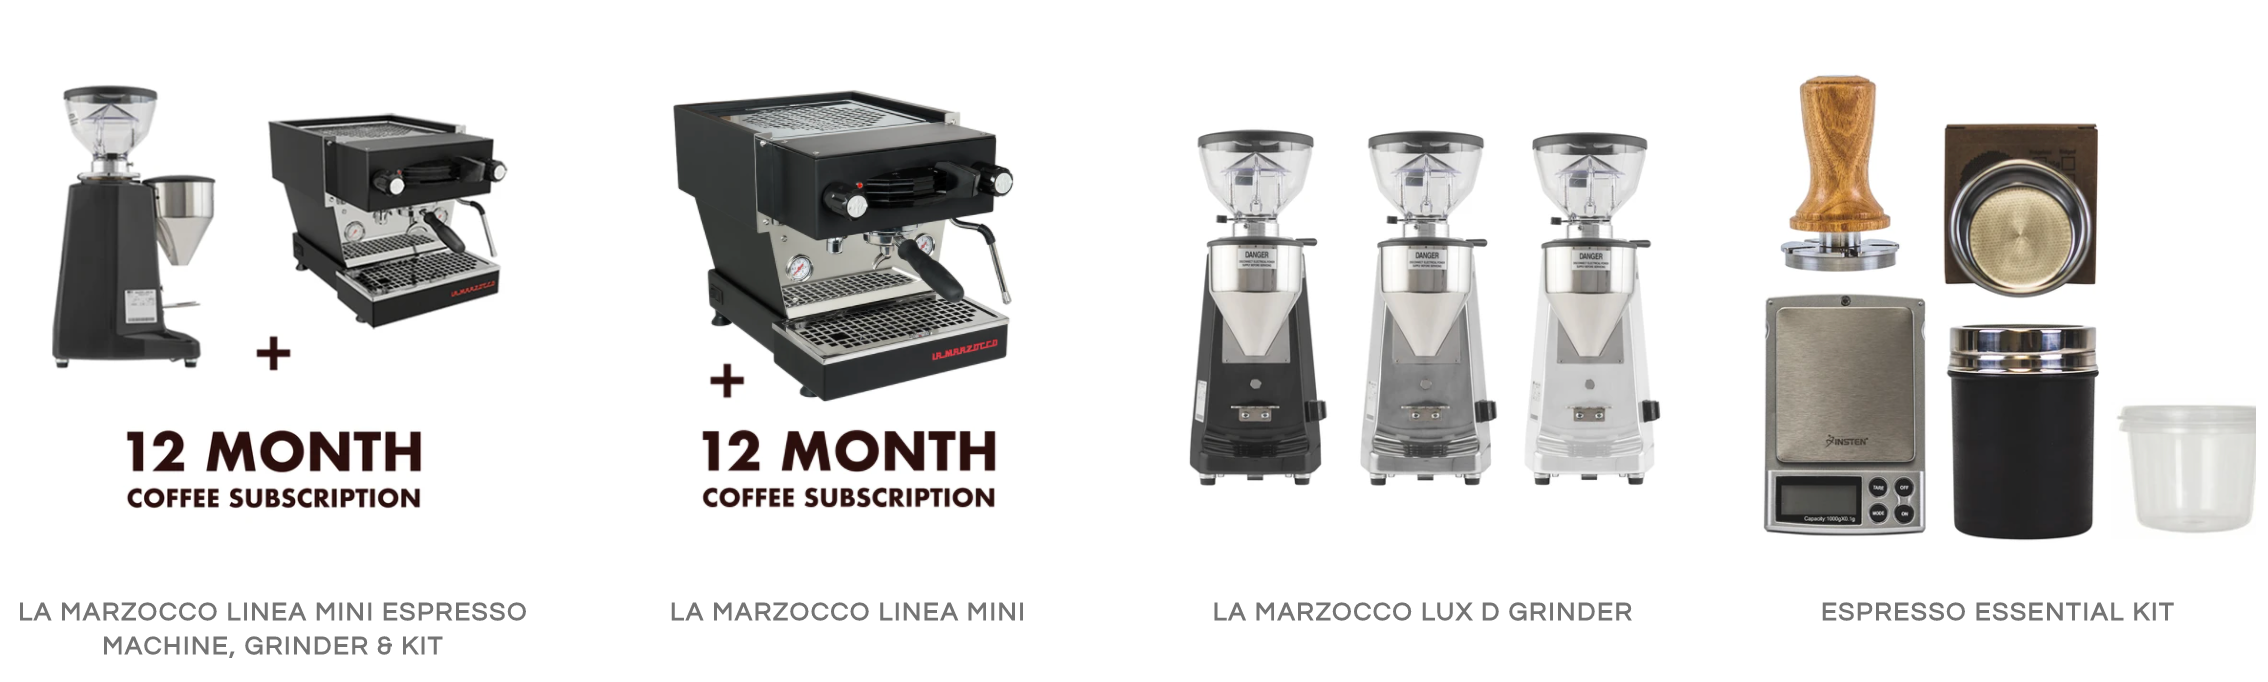 La Marzocco Linea Mini Machine and A Year of free coffee